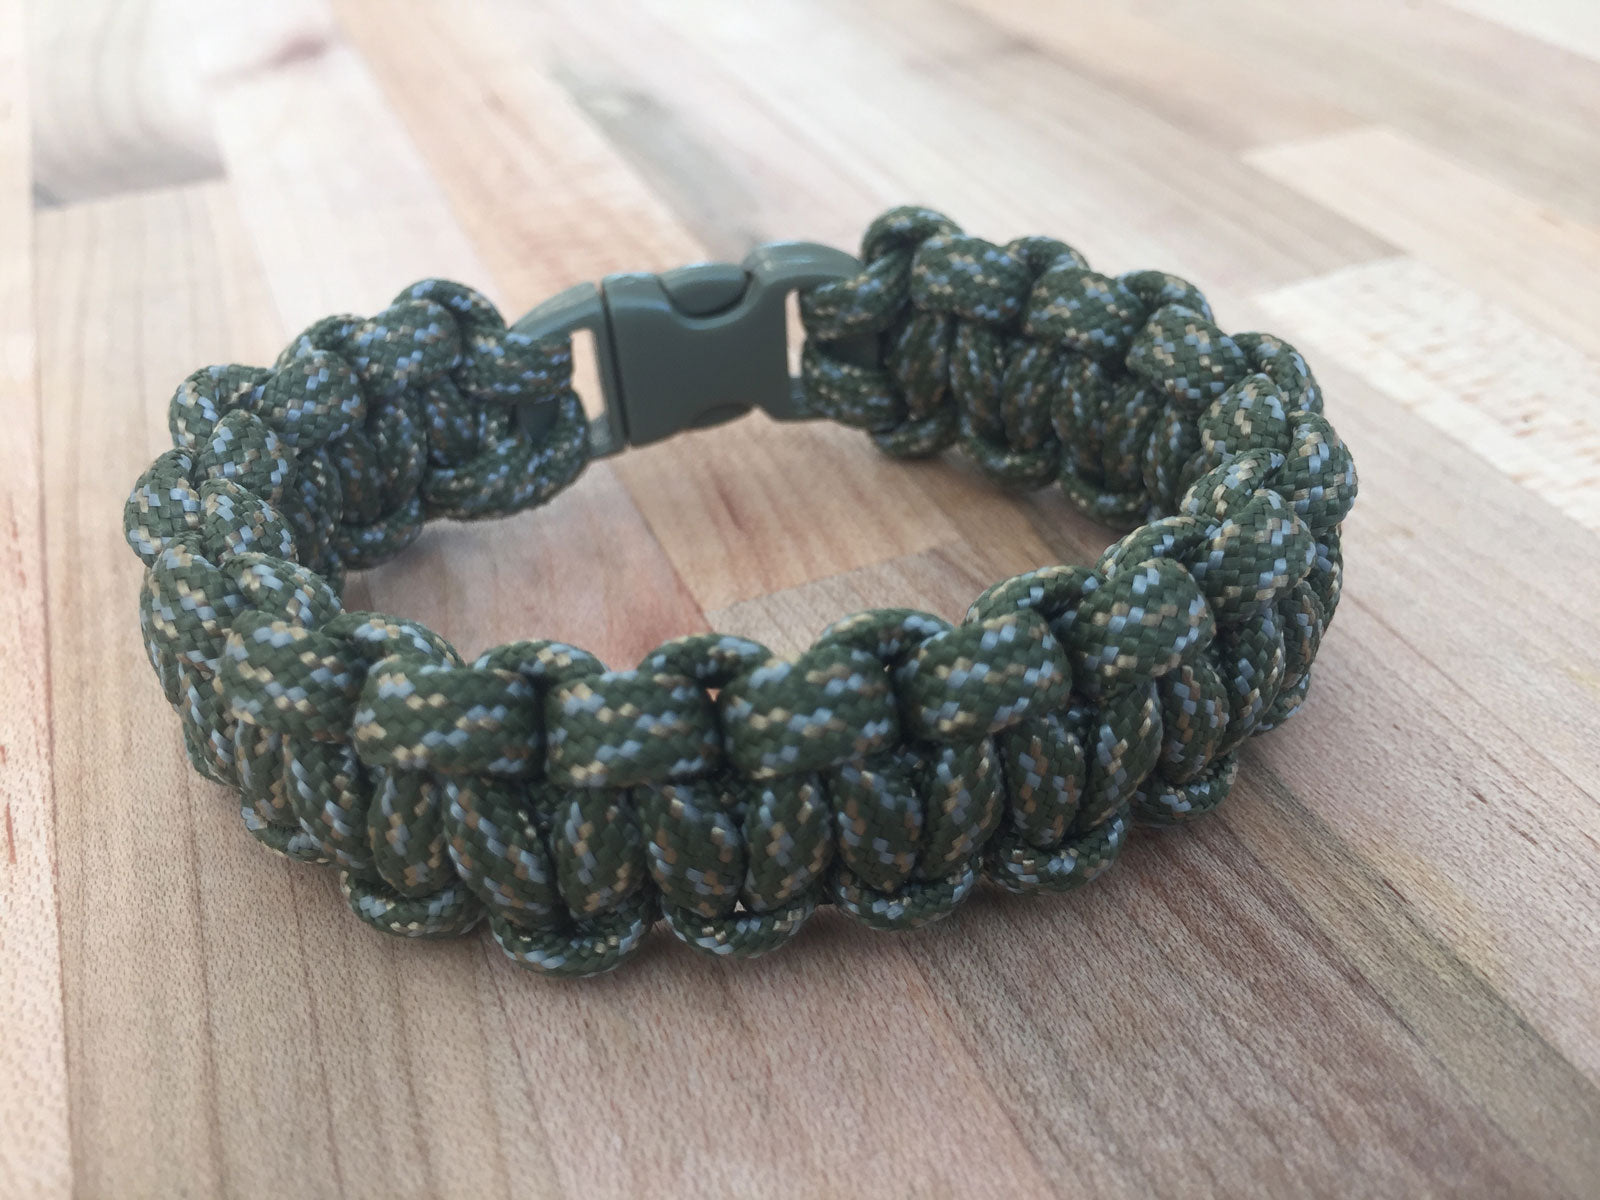 Easy Step-By-Step Instructions for Making a Paracord Bracelet